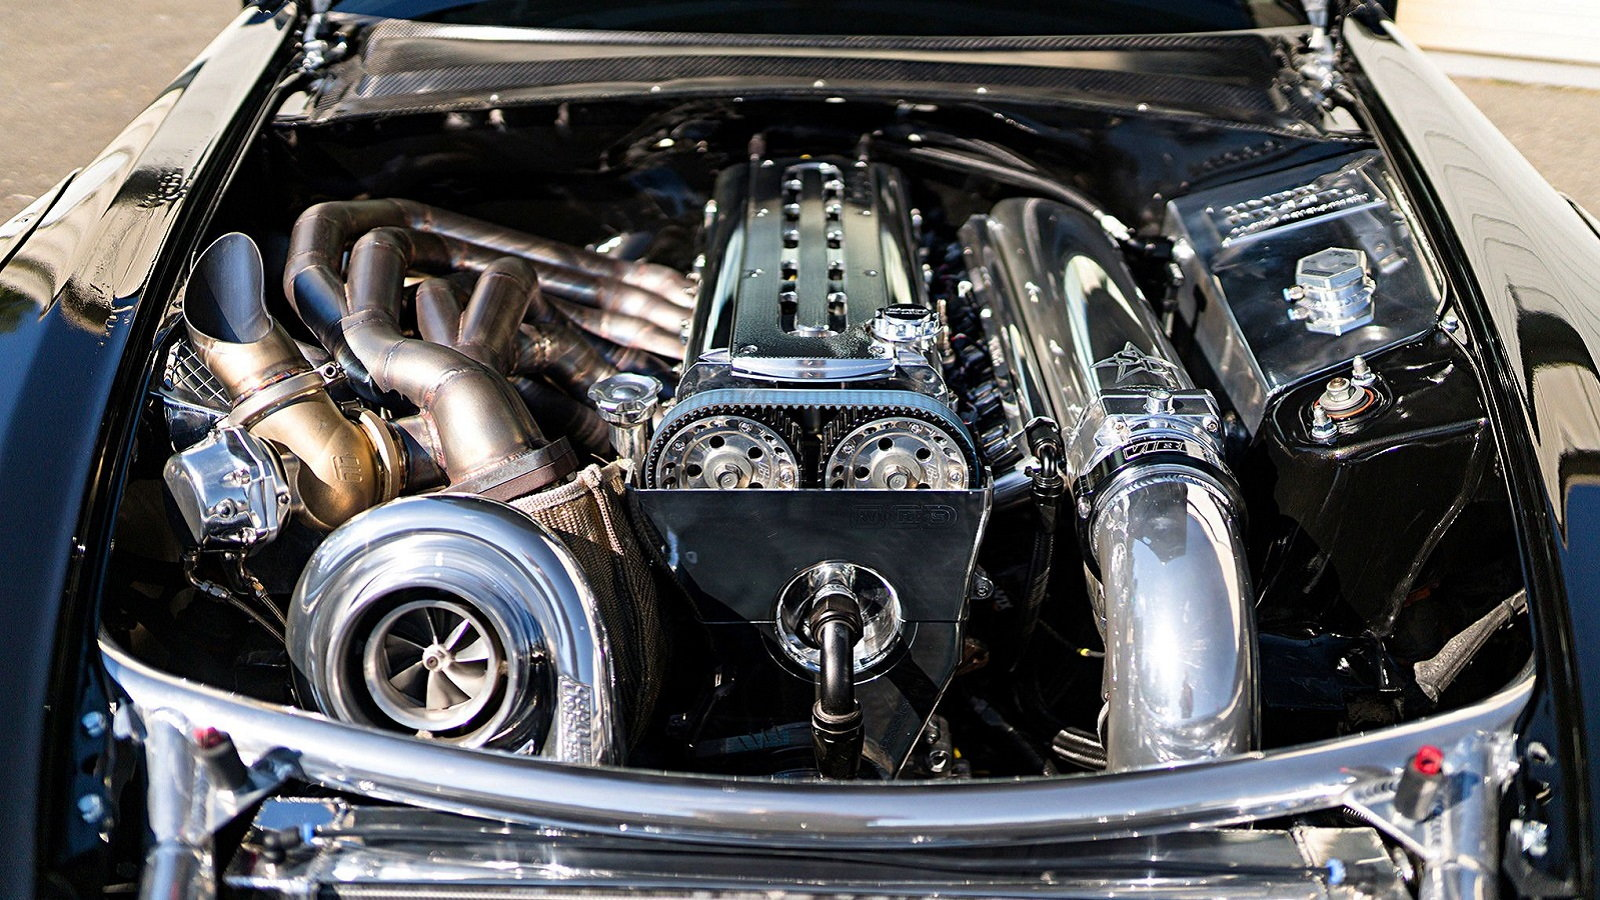 Wild AP1 S2000 Swaps Out F20 for 1,250 HP 2JZ